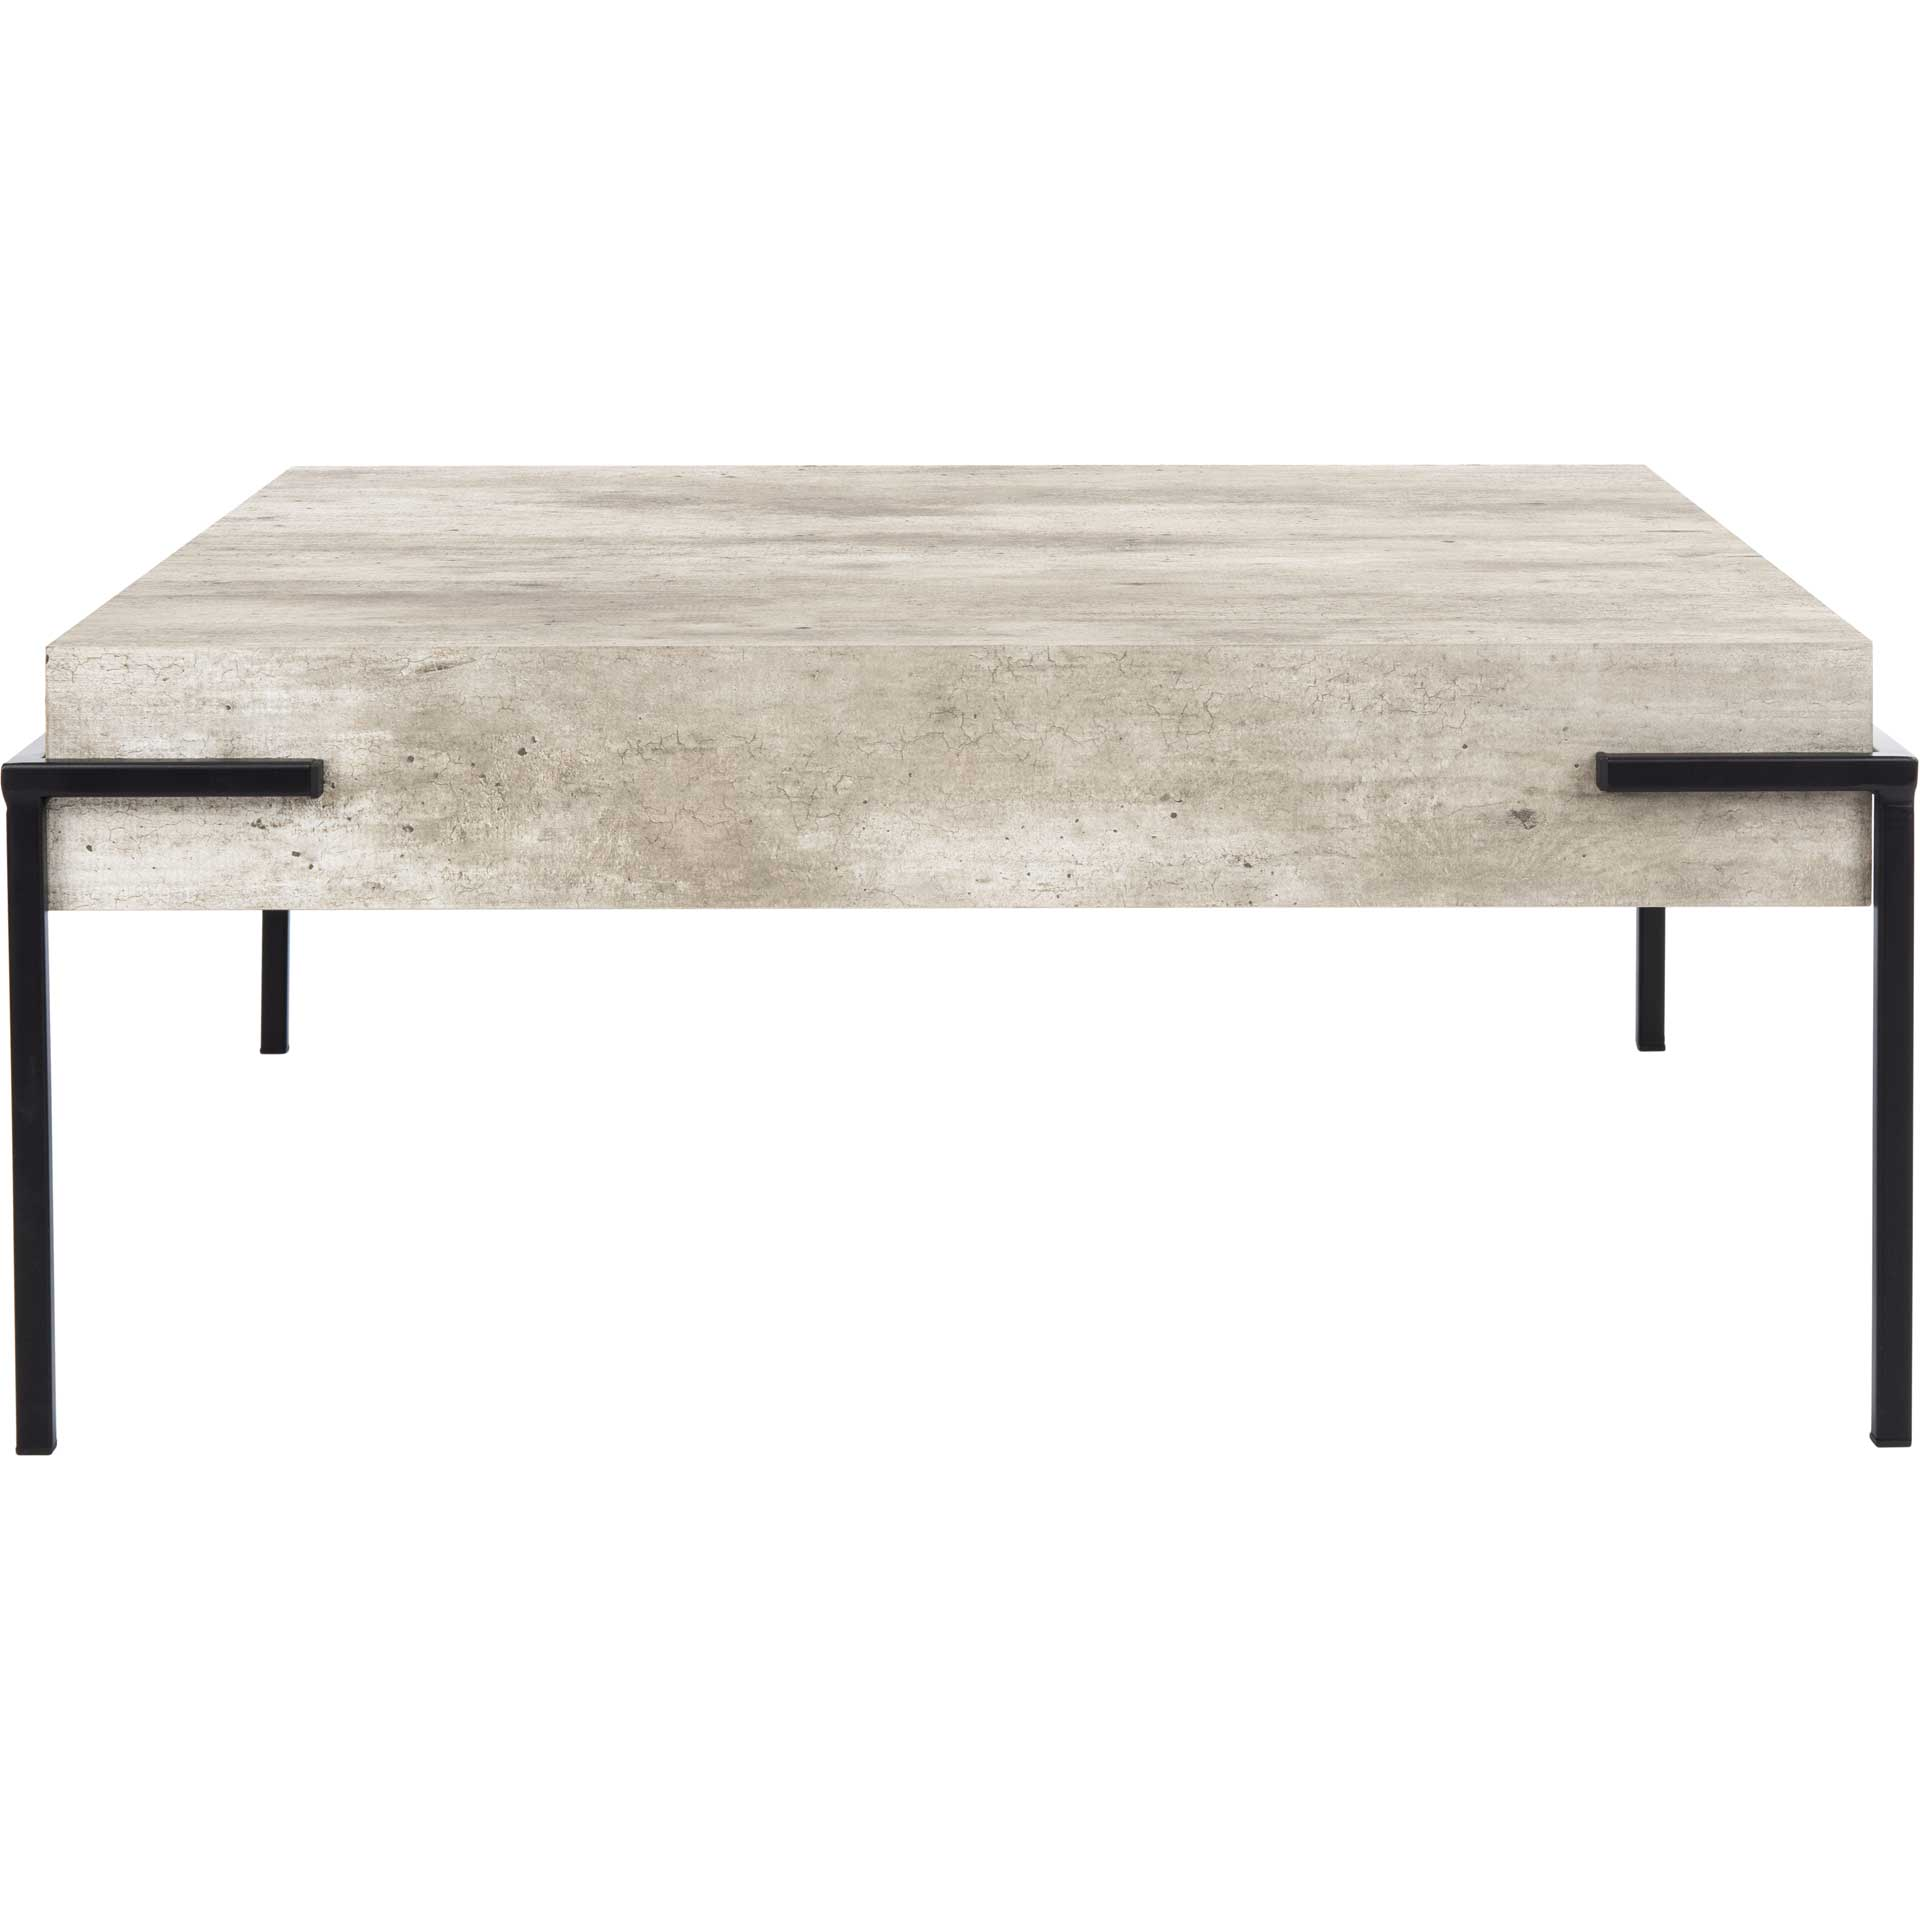 Elliot Square Coffee Table Light Gray/Black